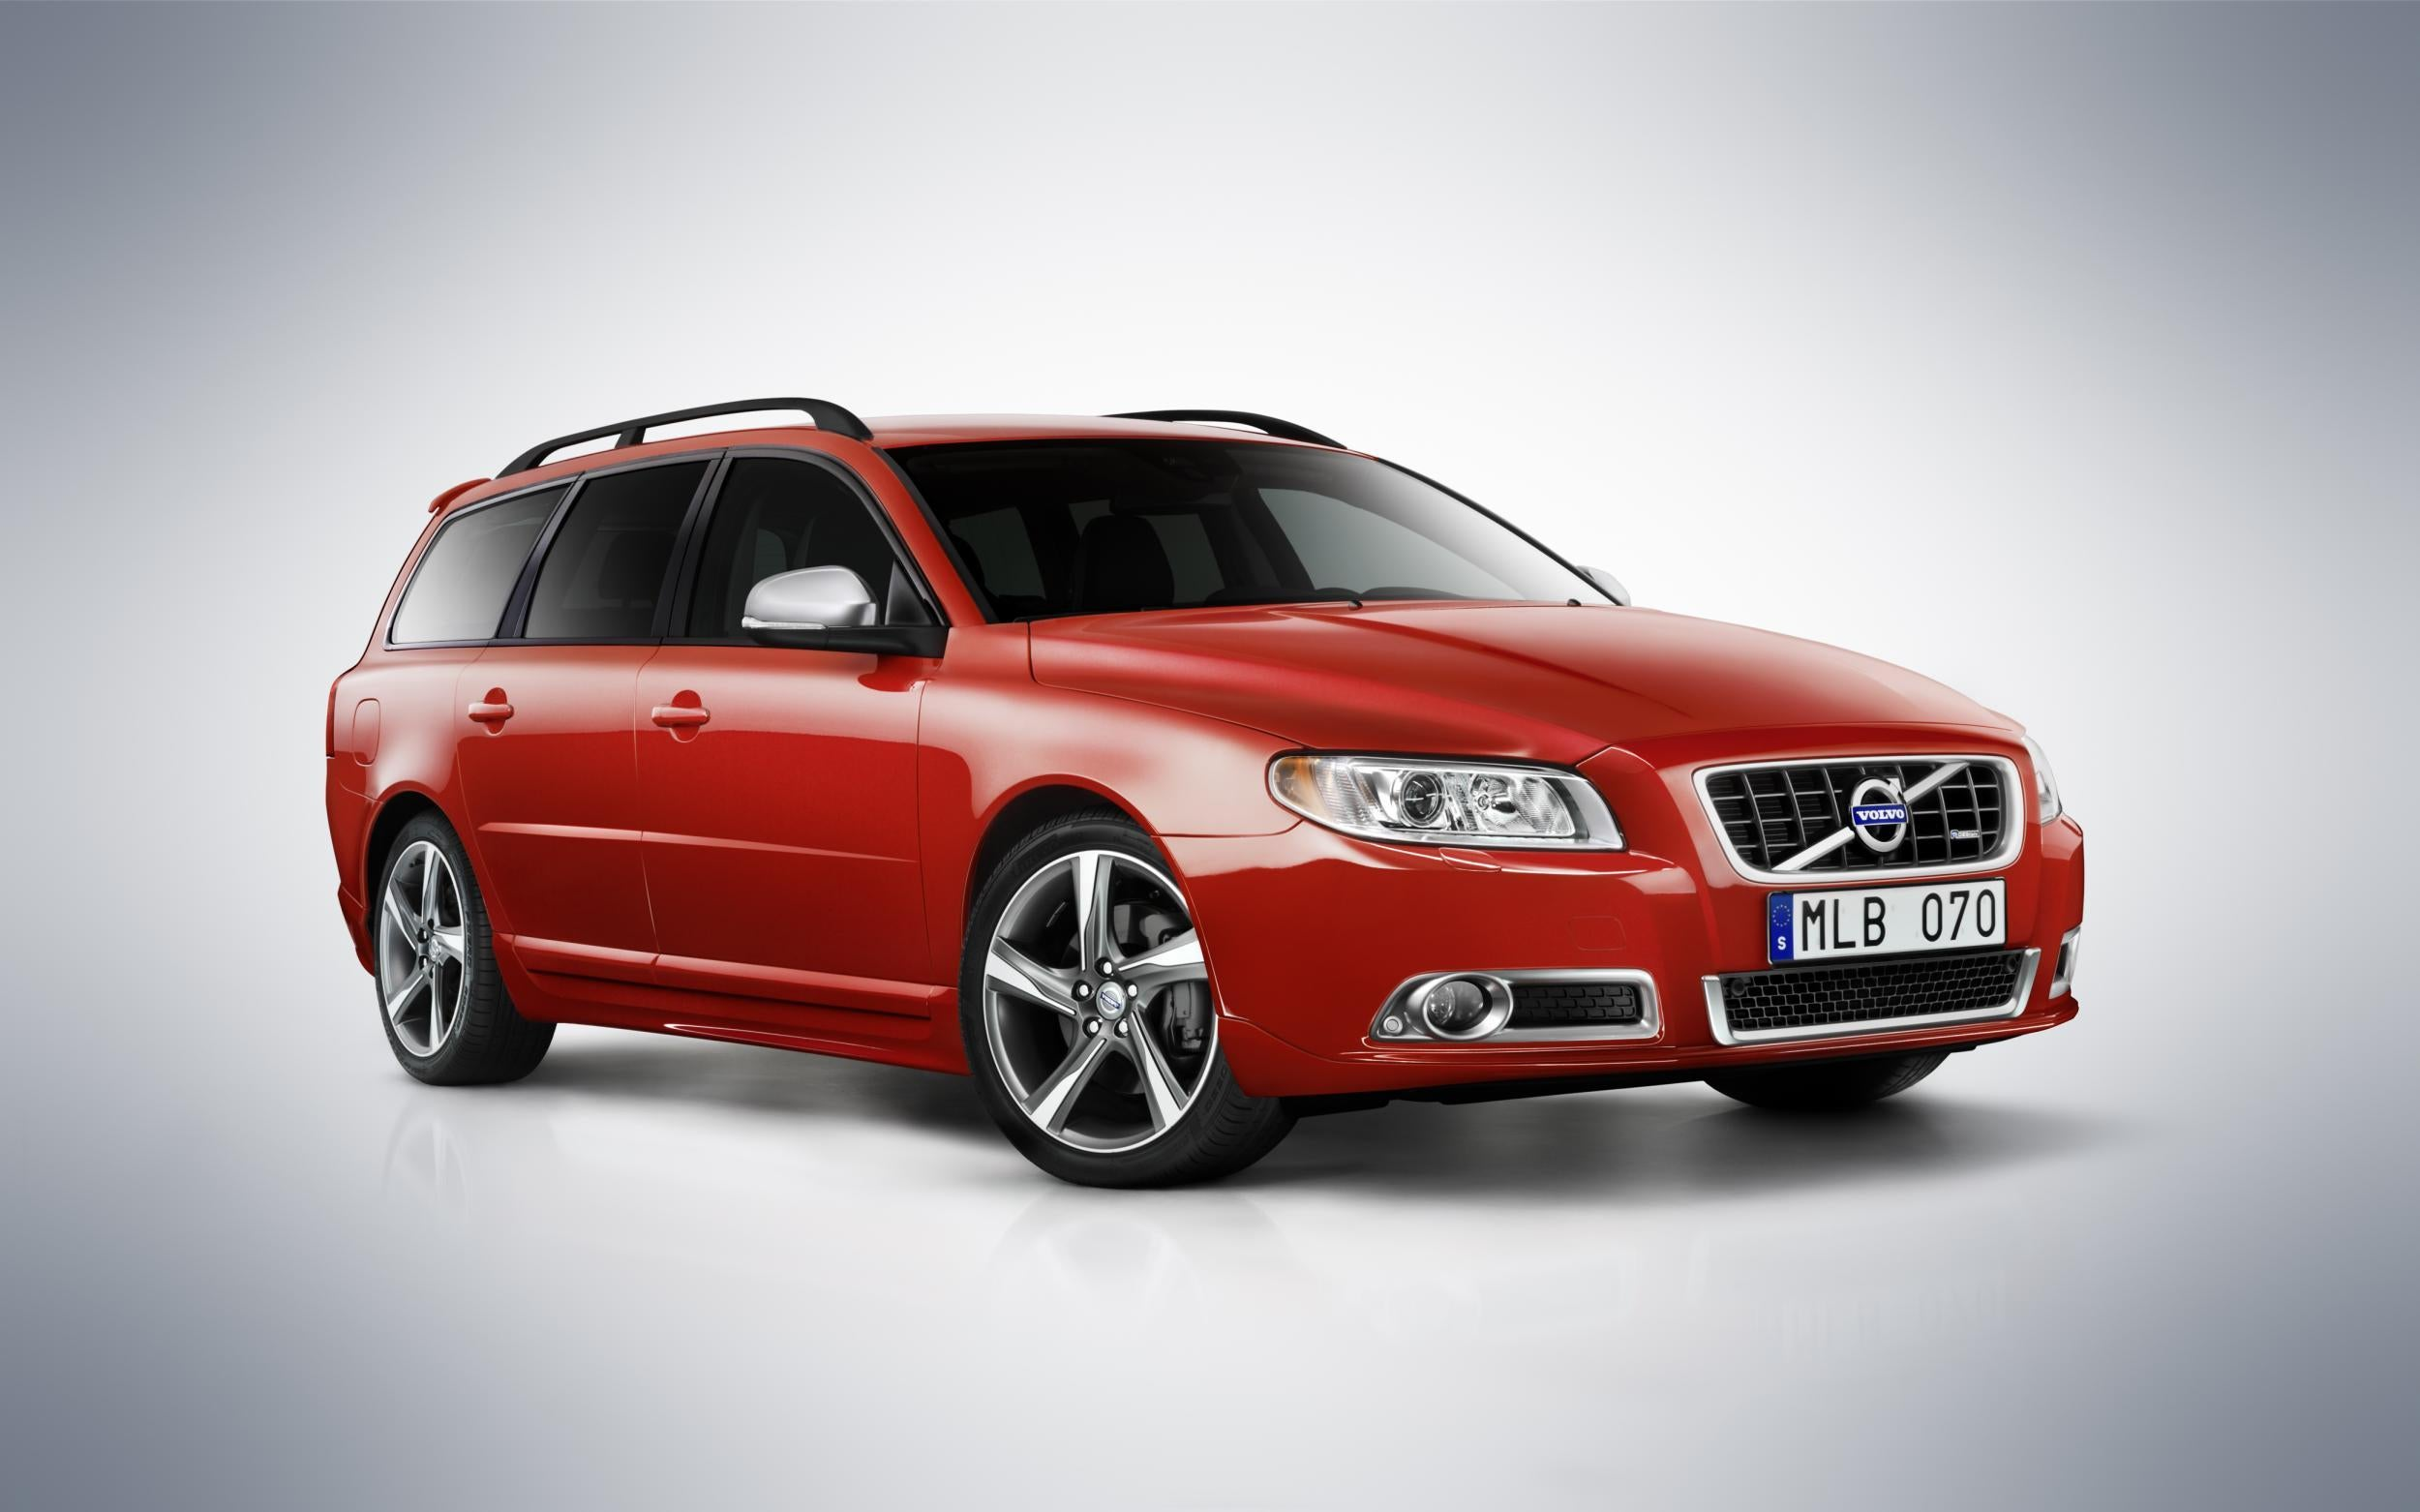 Car Choice: Something to cope reliably with the snow   The